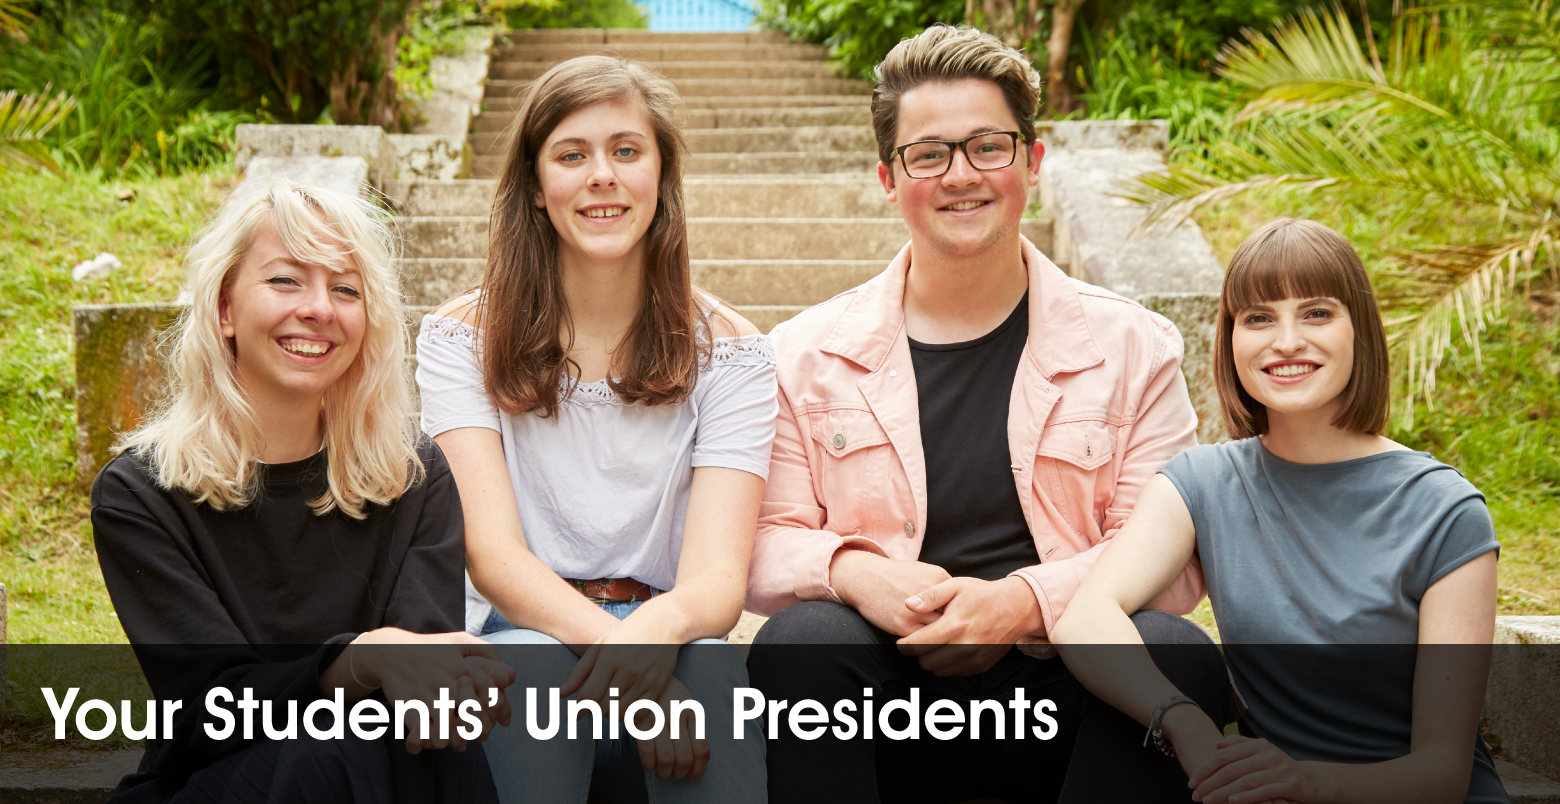 Your Student's Union Presidents